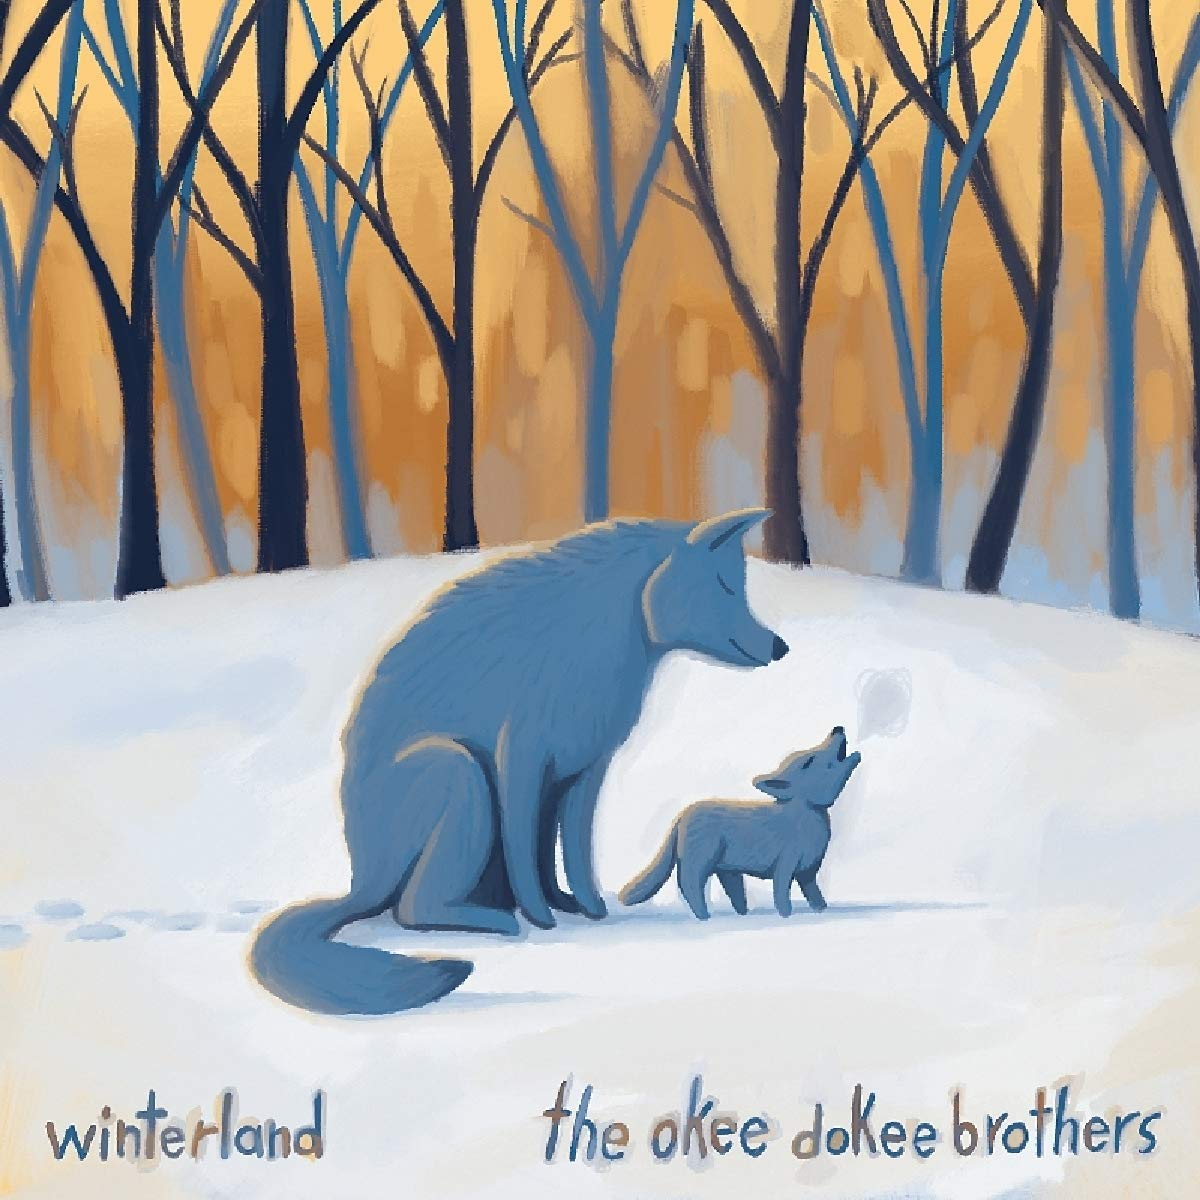 The Okee Dokee Brothers (Best Kids Music from The 62nd GRAMMY Awards)